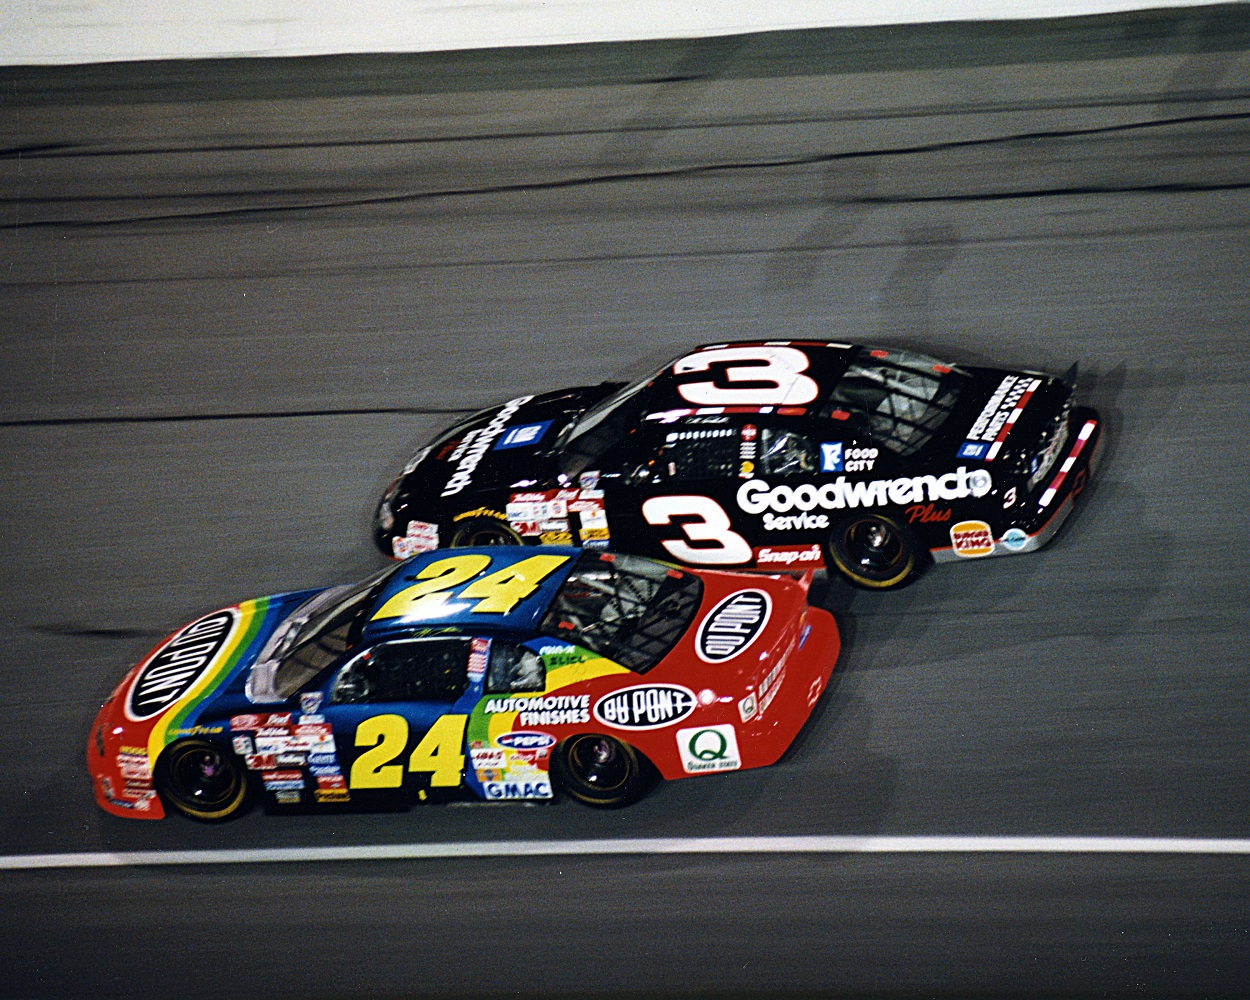 Dale Earnhardt Sr. and Jeff Gordon Once Engaged in an Epic Battle at Darlington, Where Both Had Dominating Runs During Their Careers